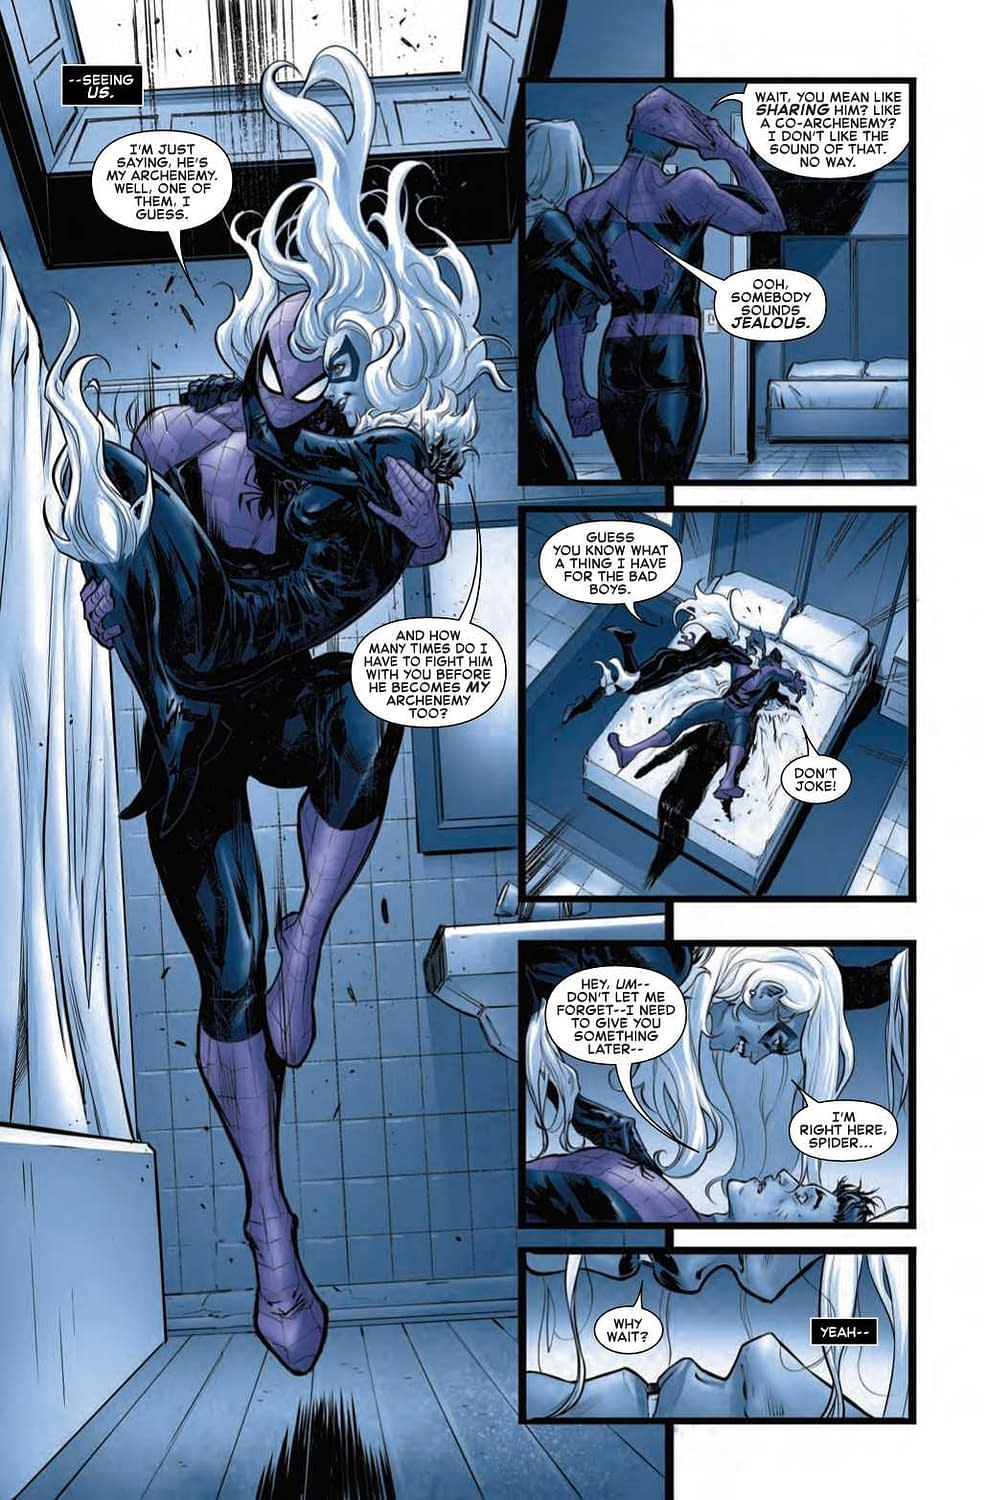 Black Cat Having Sex Dreams About Spider-Man in Next Week's Amazing Spider-Man #16.HU